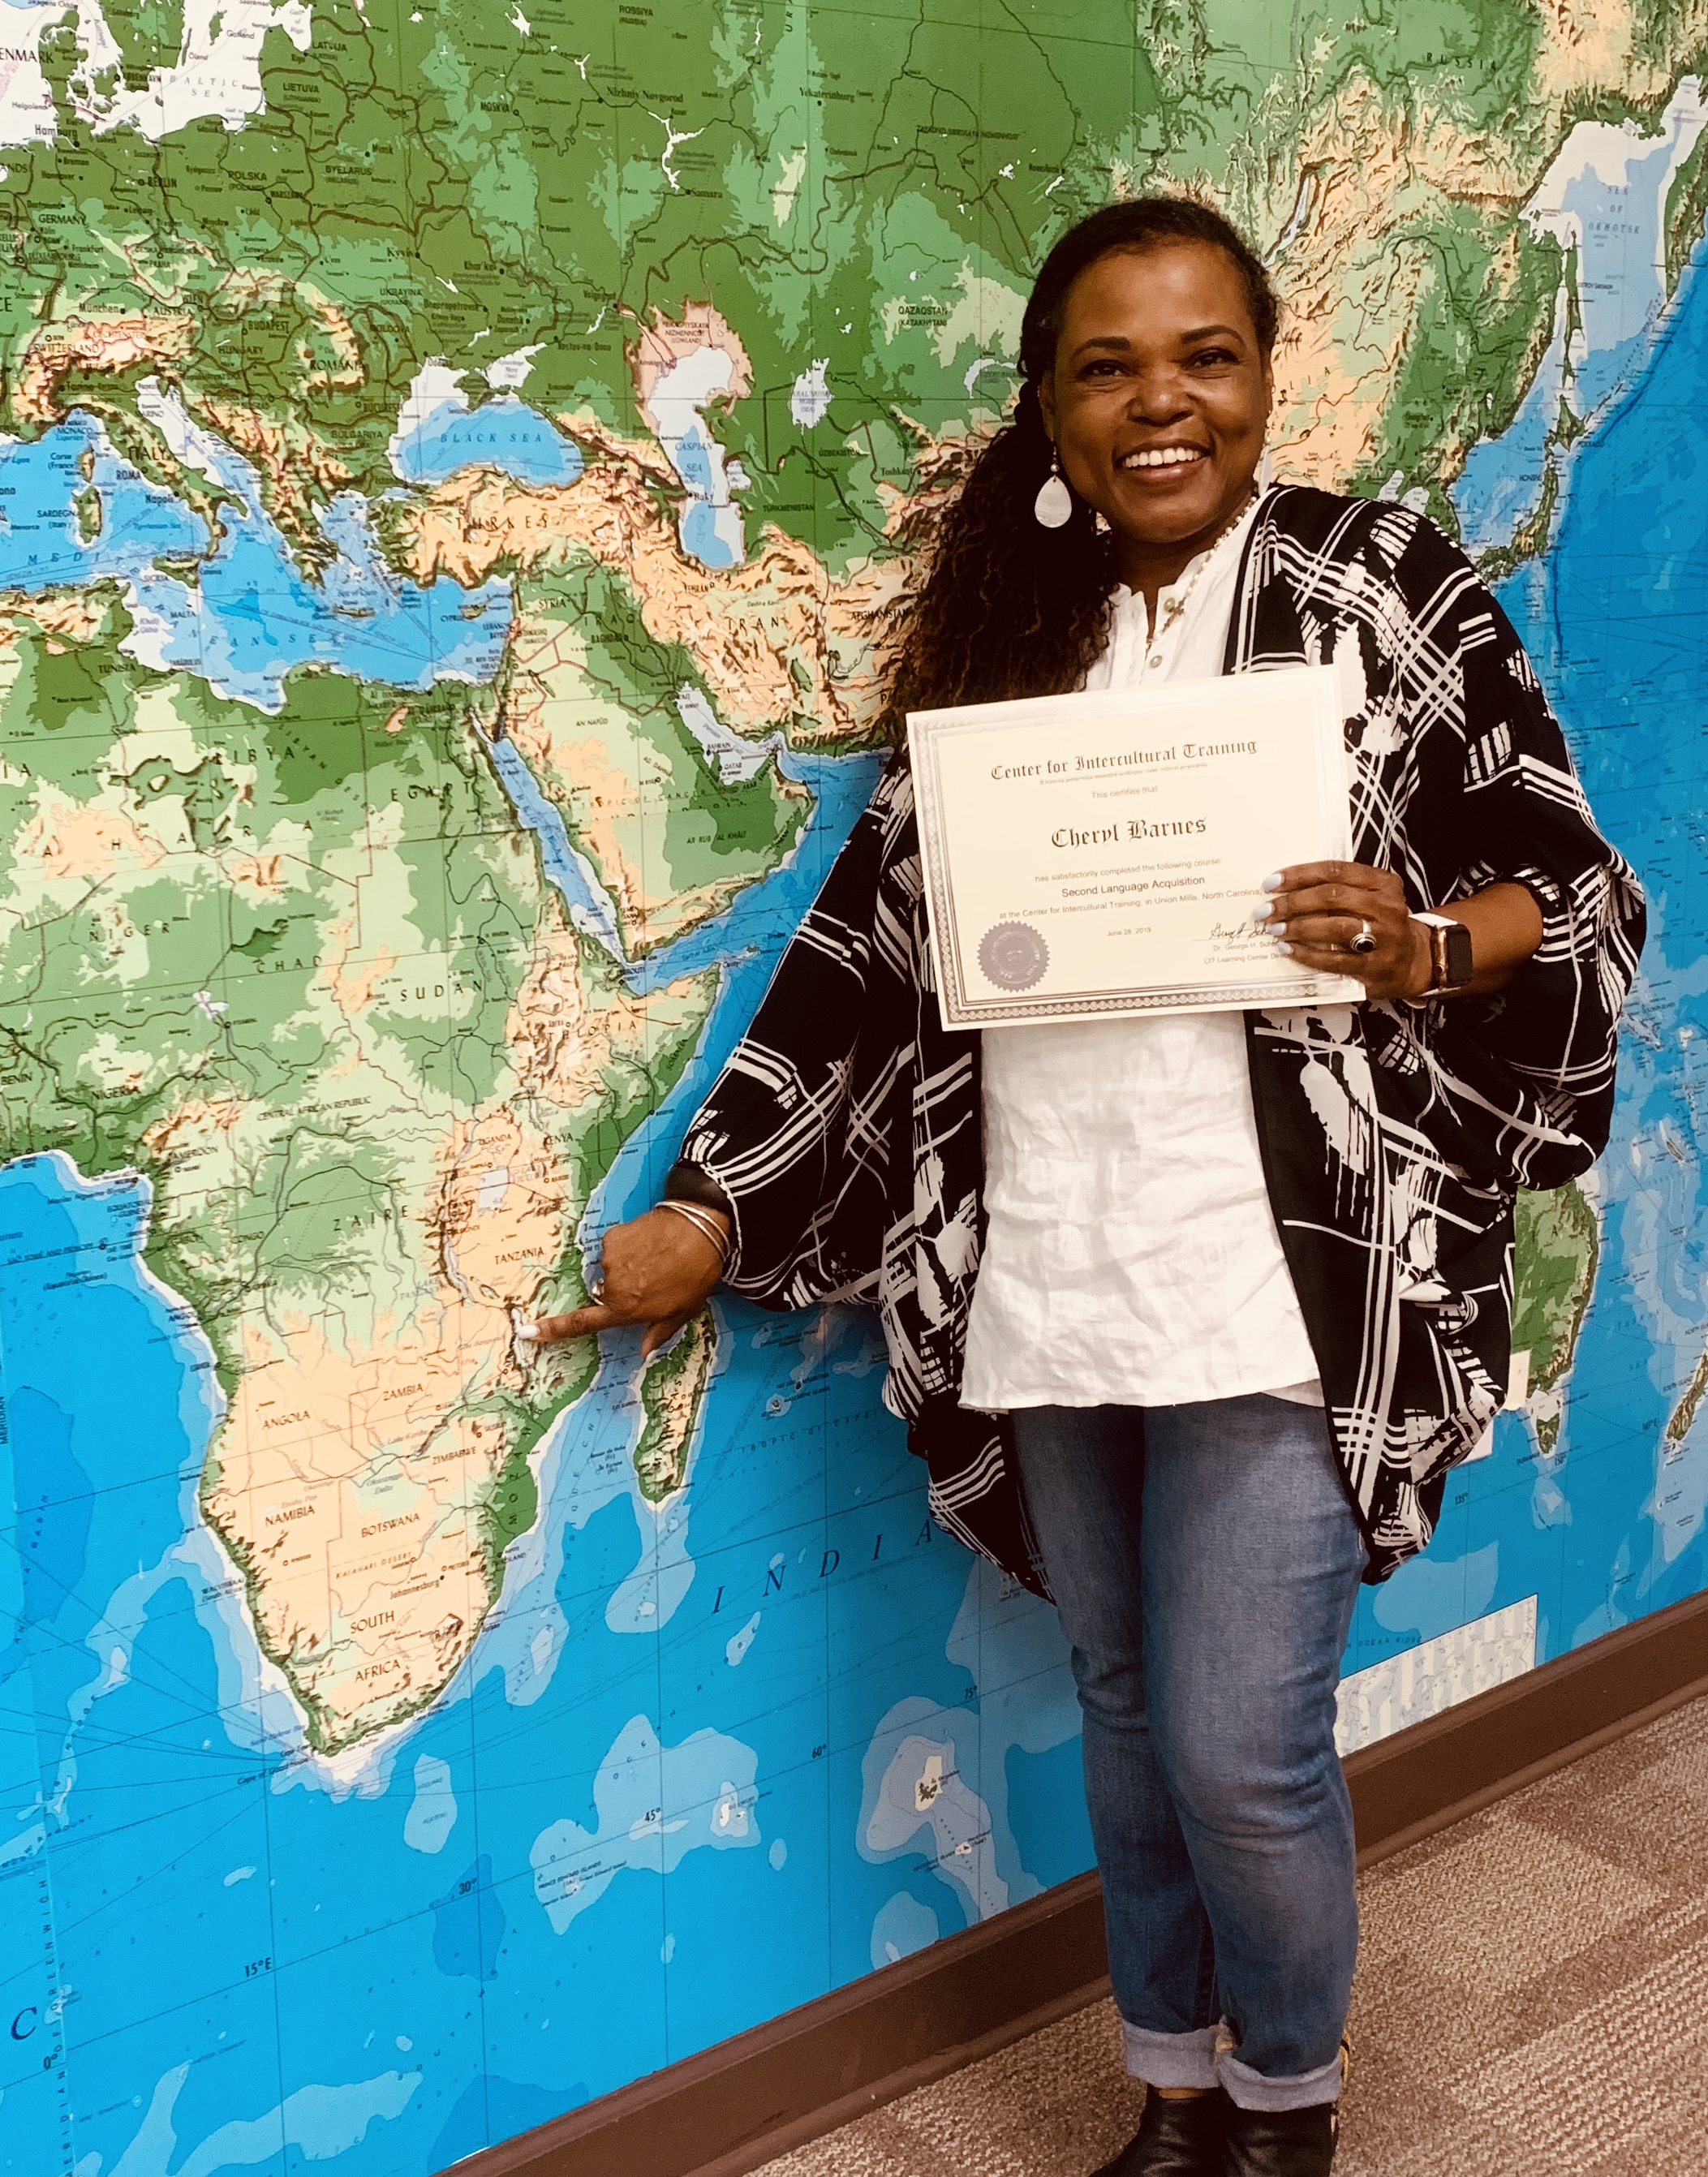 Second language acquisition diploma from Center for Intercultural Training, Union Mills, NC.